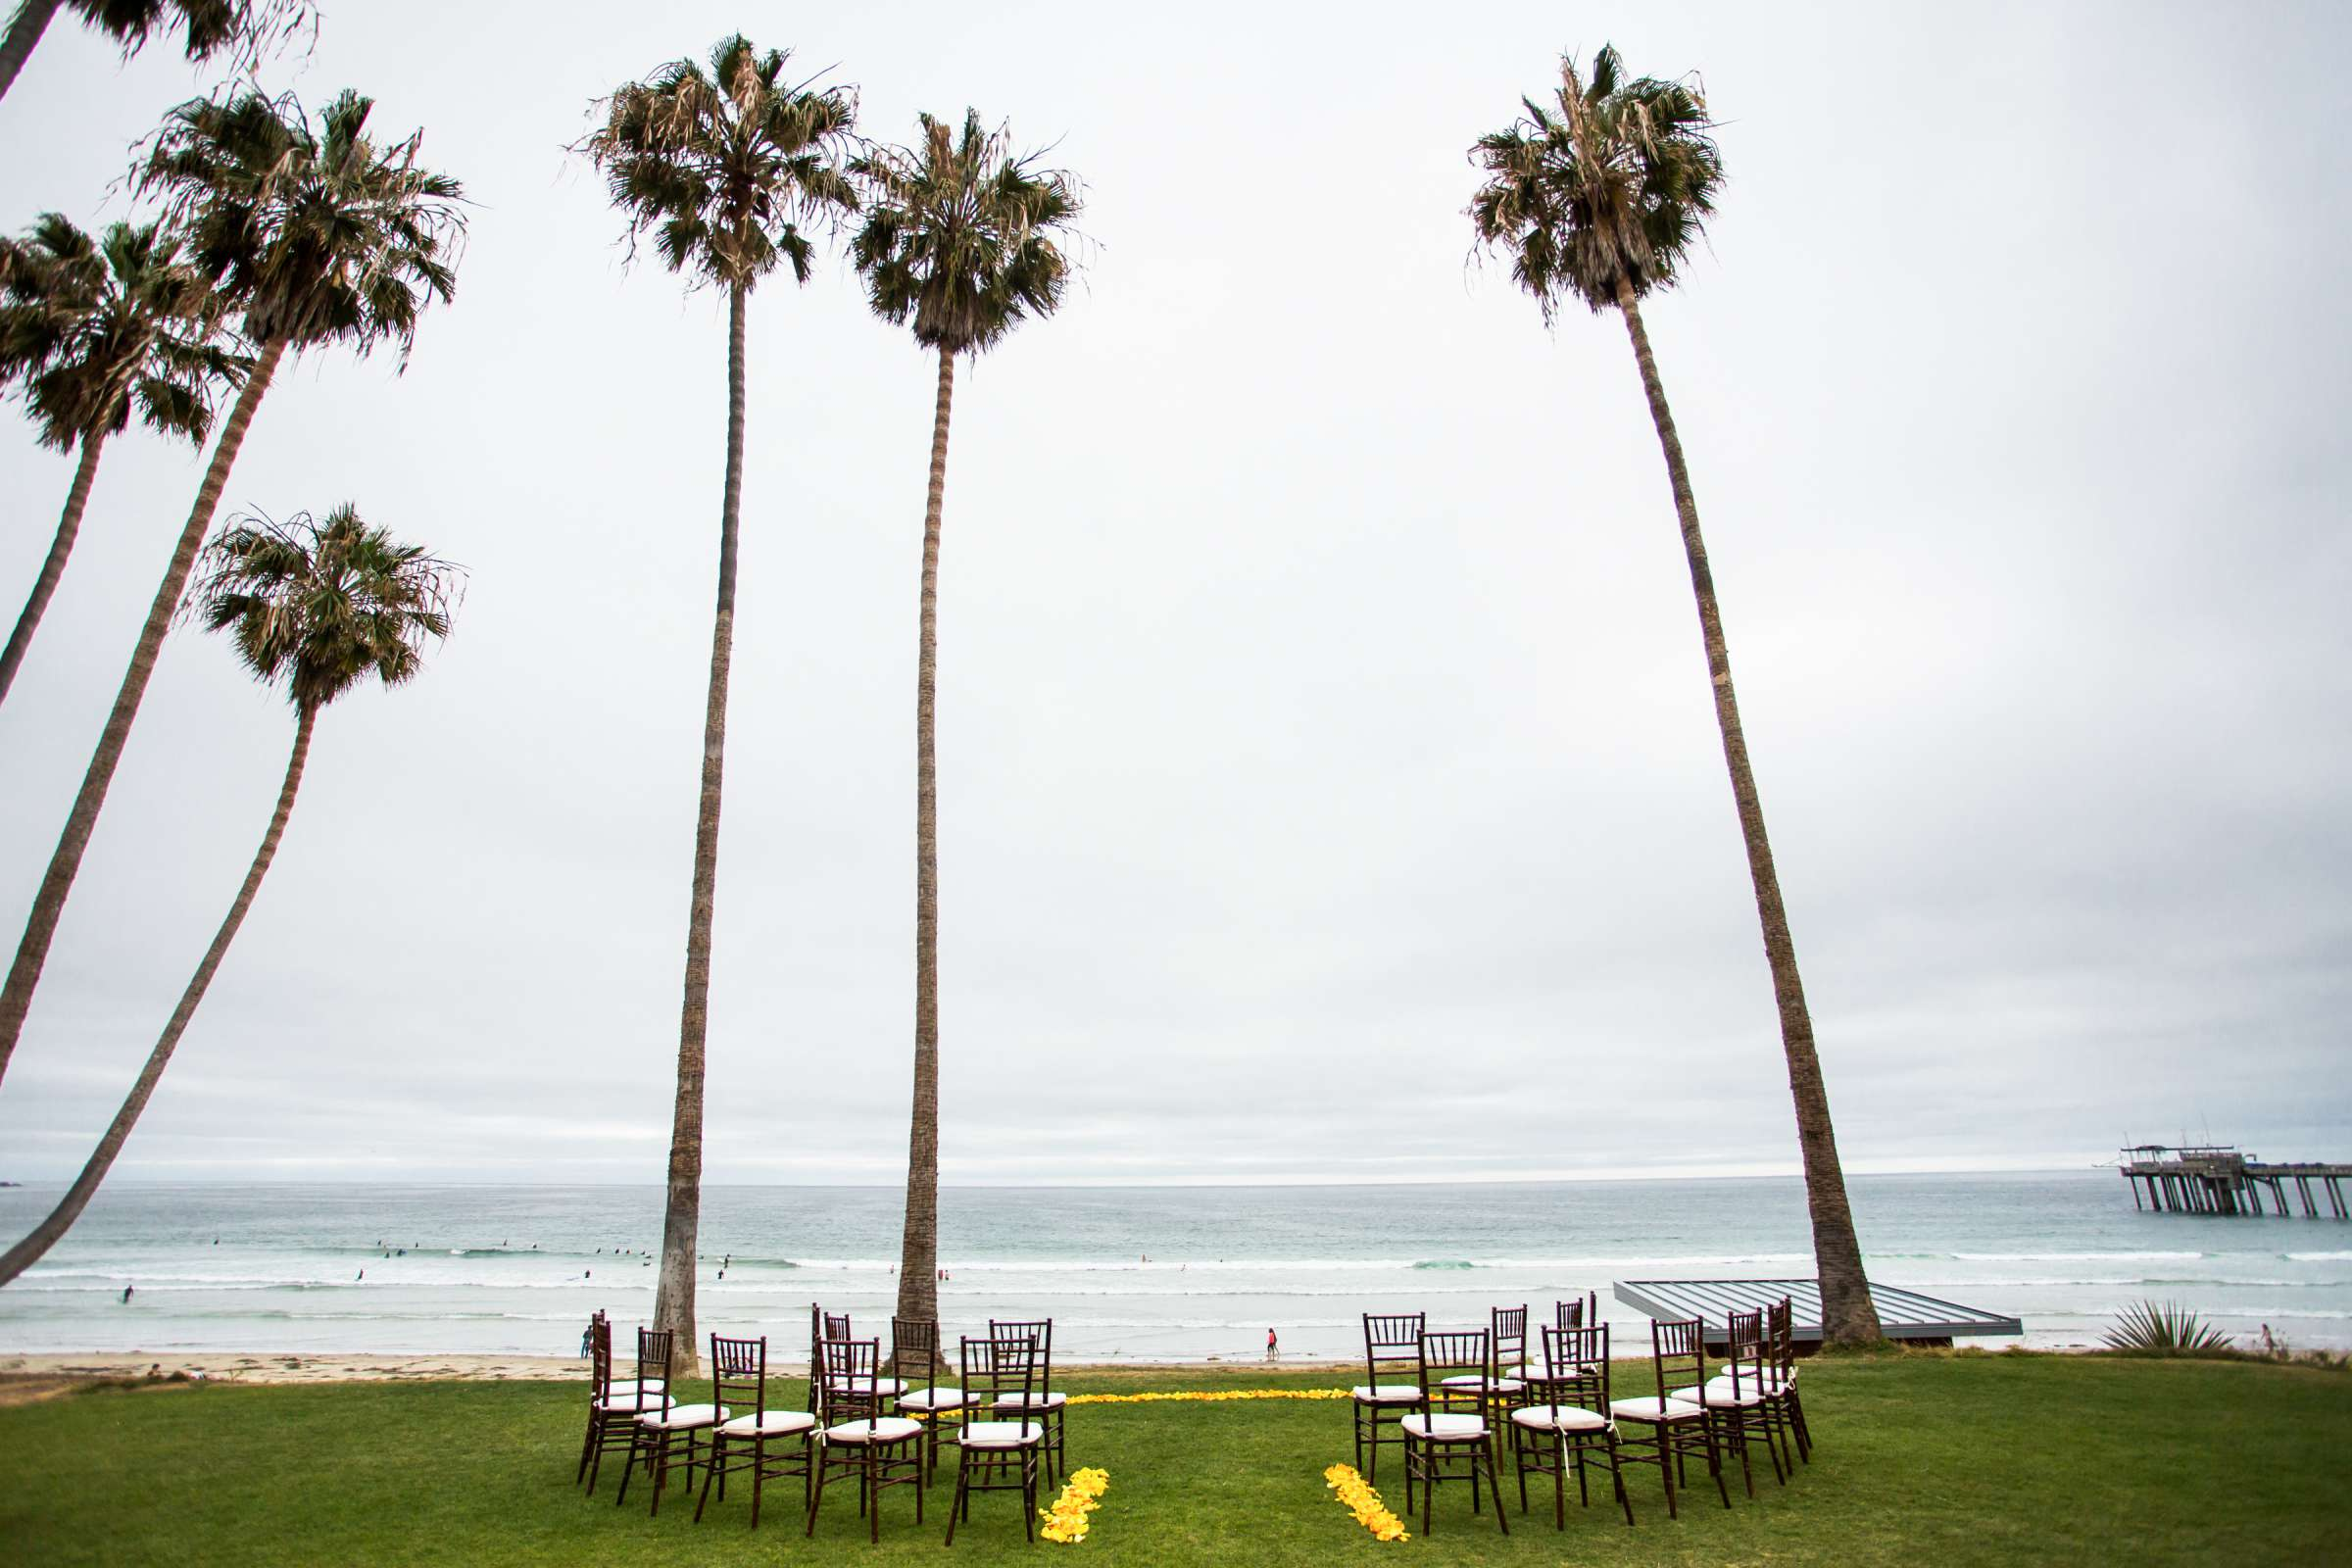 Scripps Seaside Forum Wedding coordinated by Francine Ribeau Events, Shaina and Christopher Wedding Photo #13 by True Photography